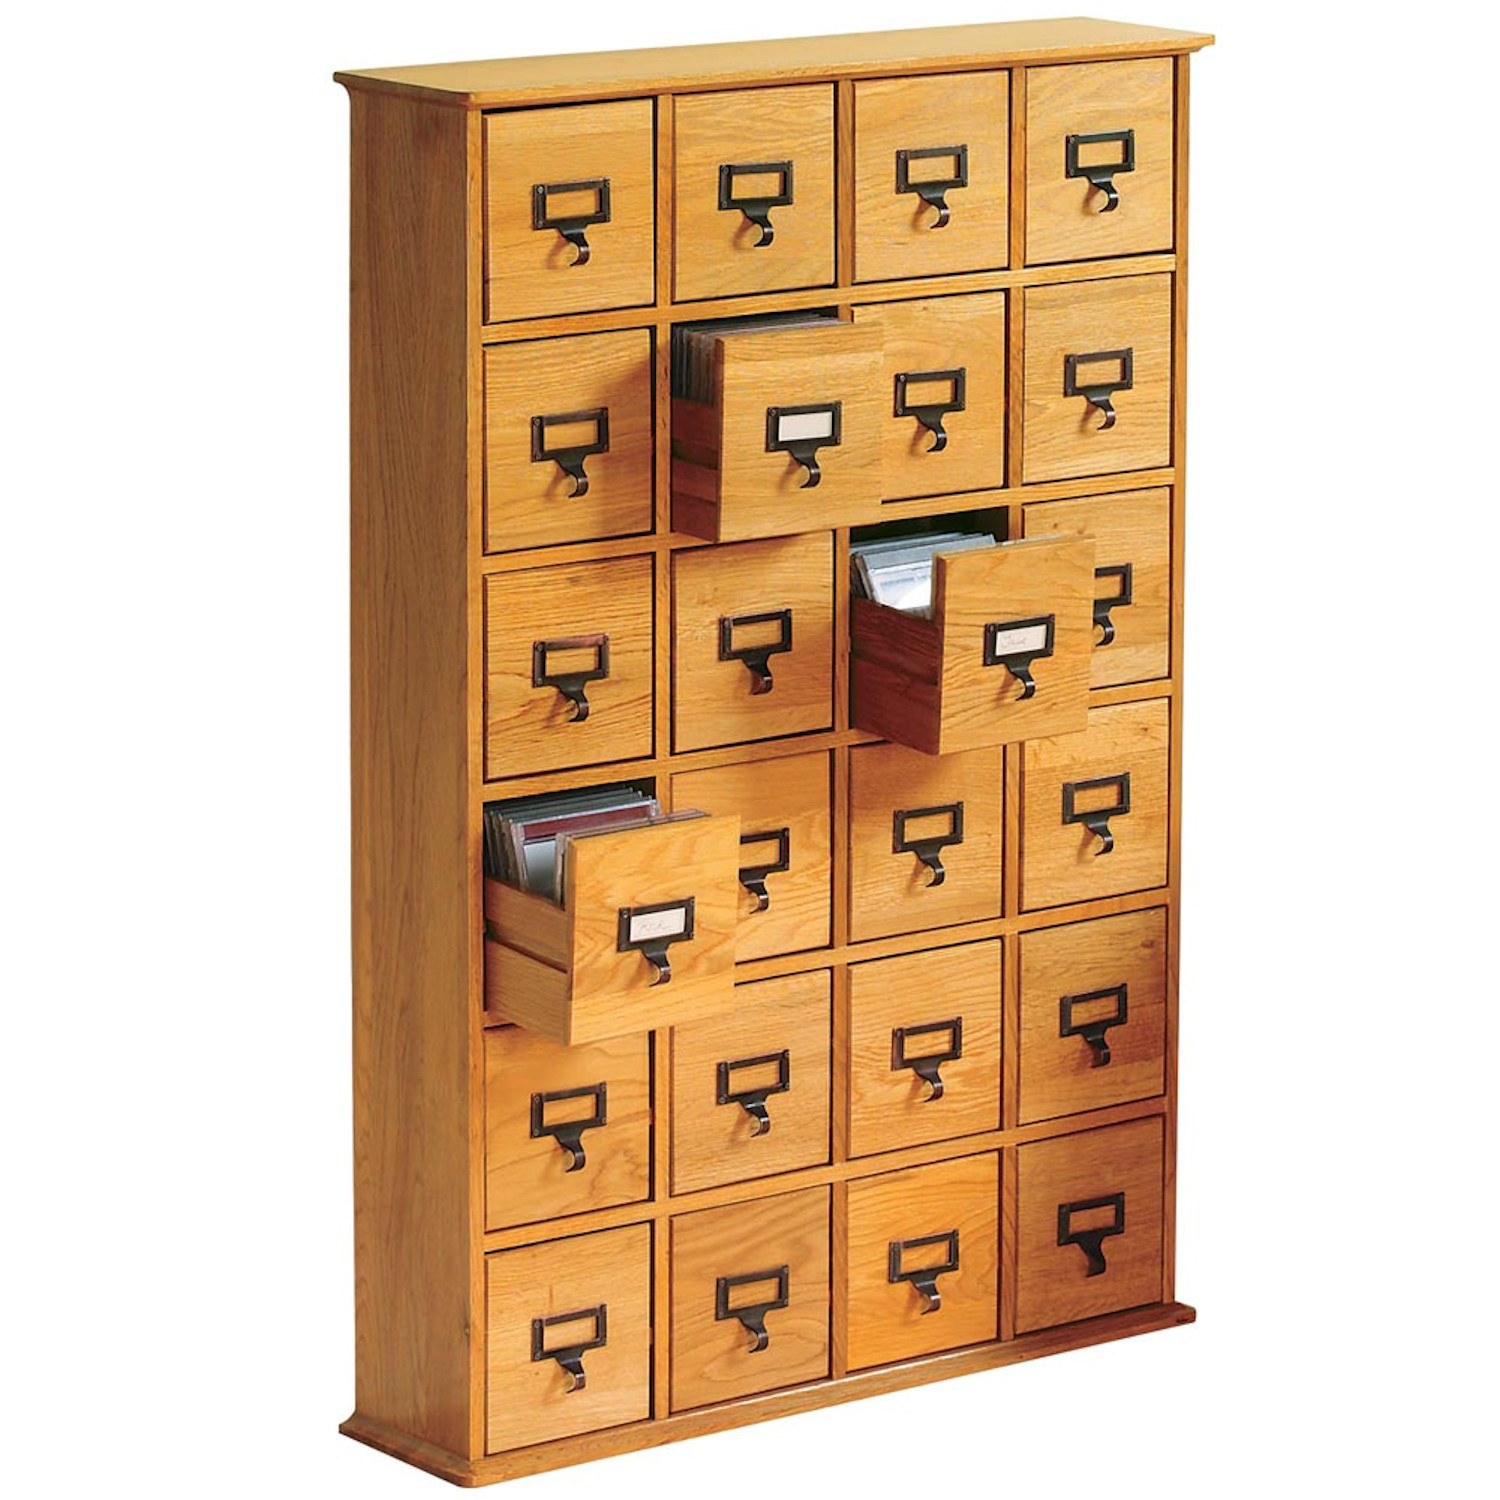 Library Catalog Media Storage Cabinet - 24 Drawer - Stores 288 CDs or DVDs - Plain Oak Wood